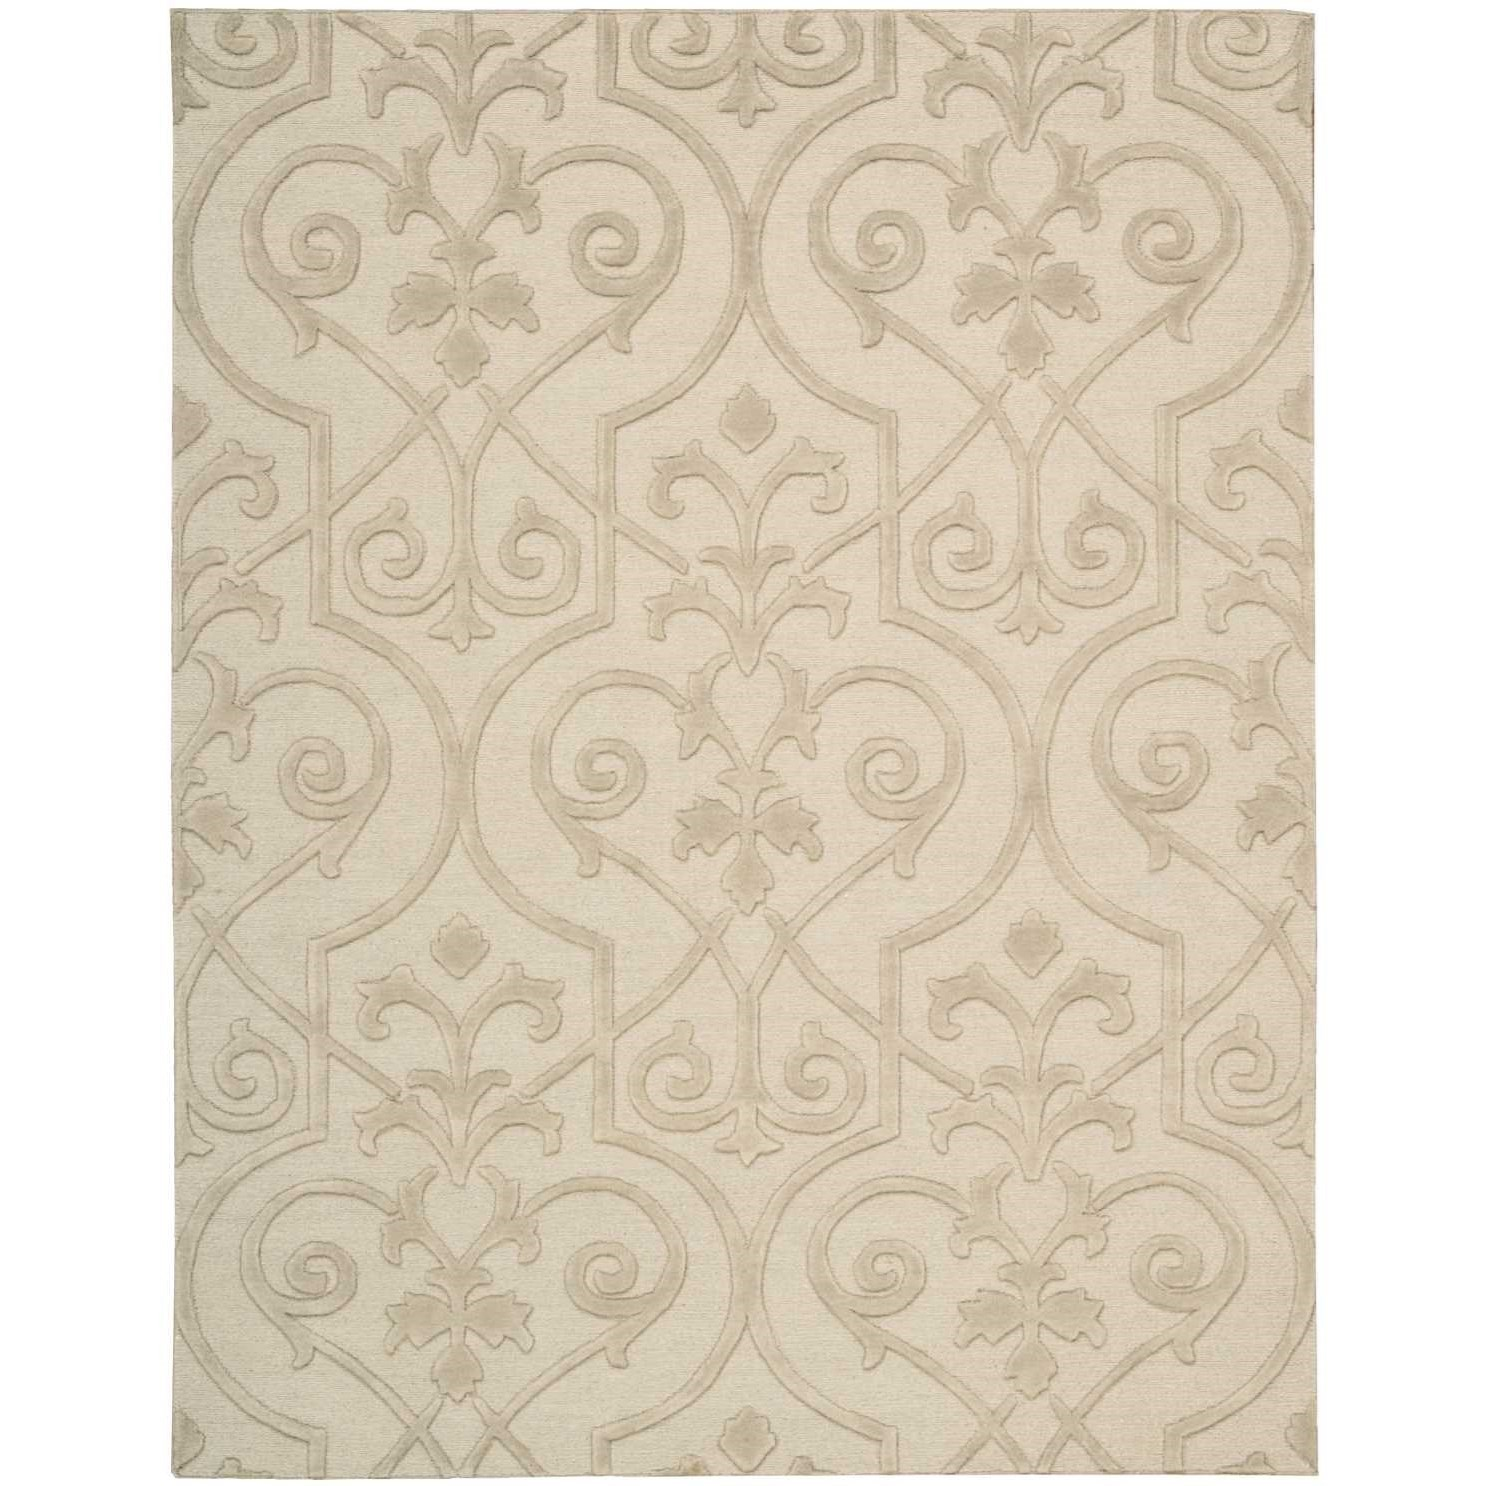 "Ambrose 3'9"" x 5'9"" Sand Rectangle Rug by Nourison at Sprintz Furniture"